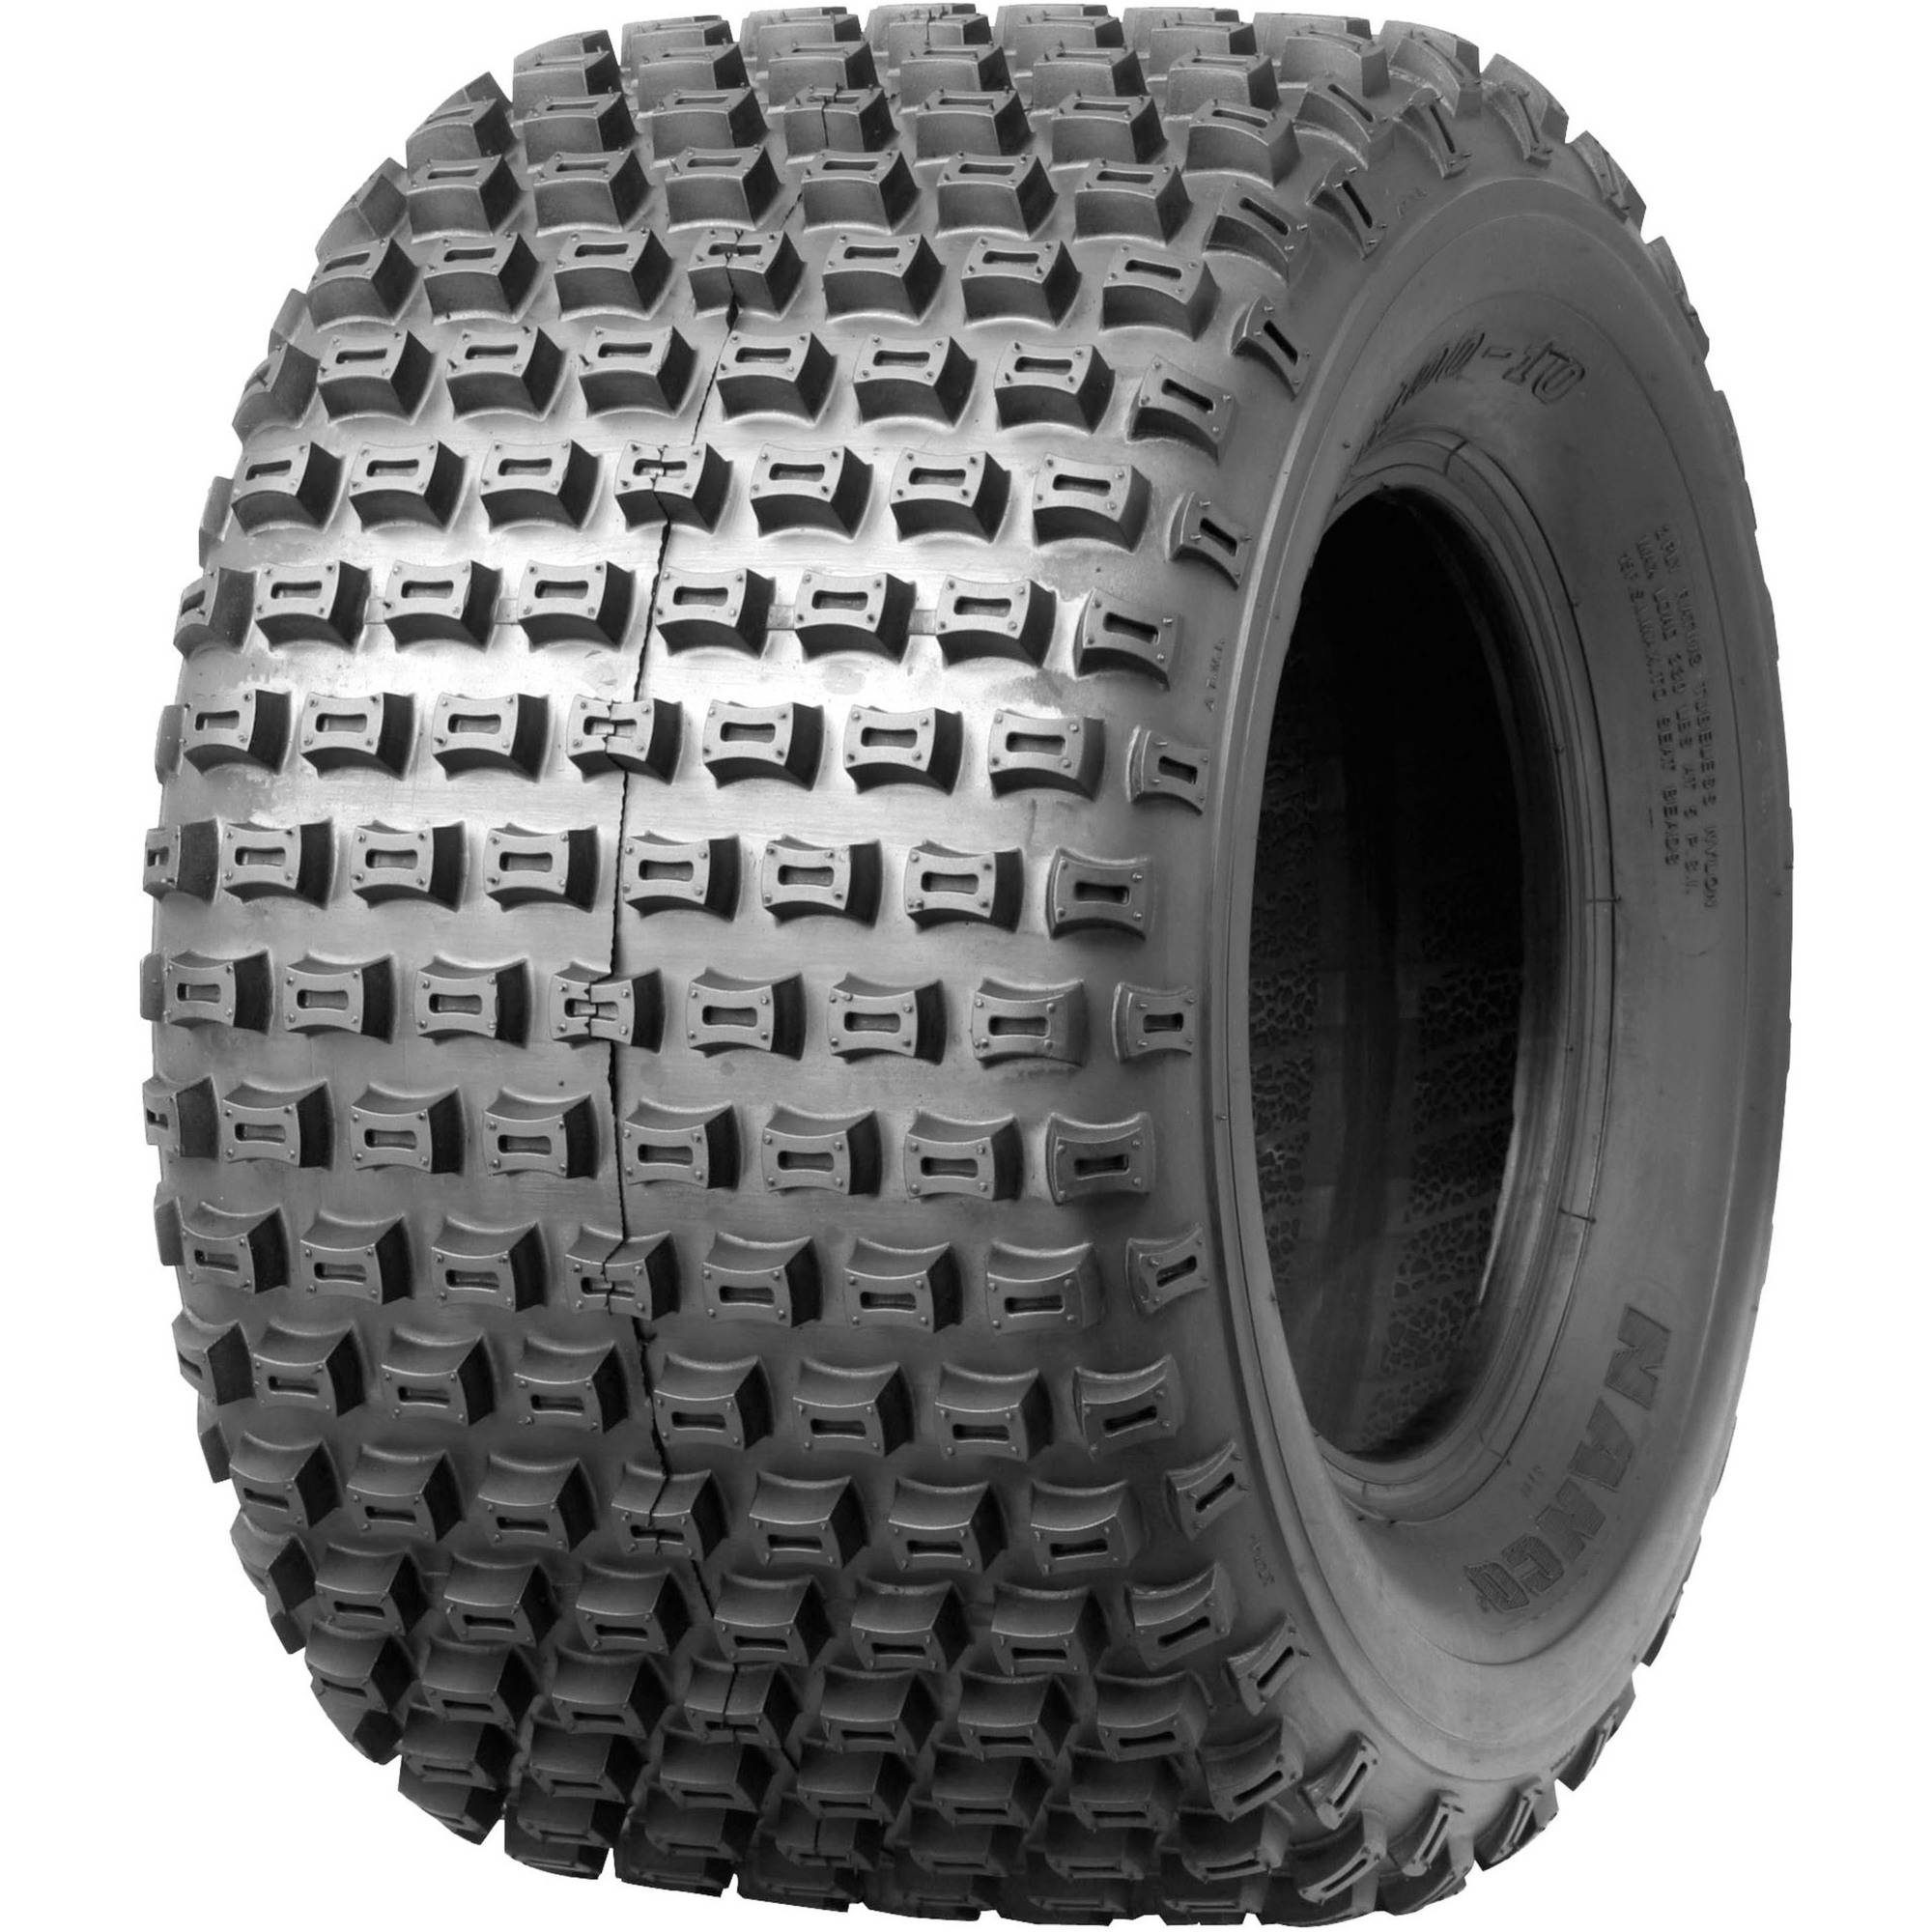 HI-RUN 2-Ply Knobby ATV Tire AT22x11-8